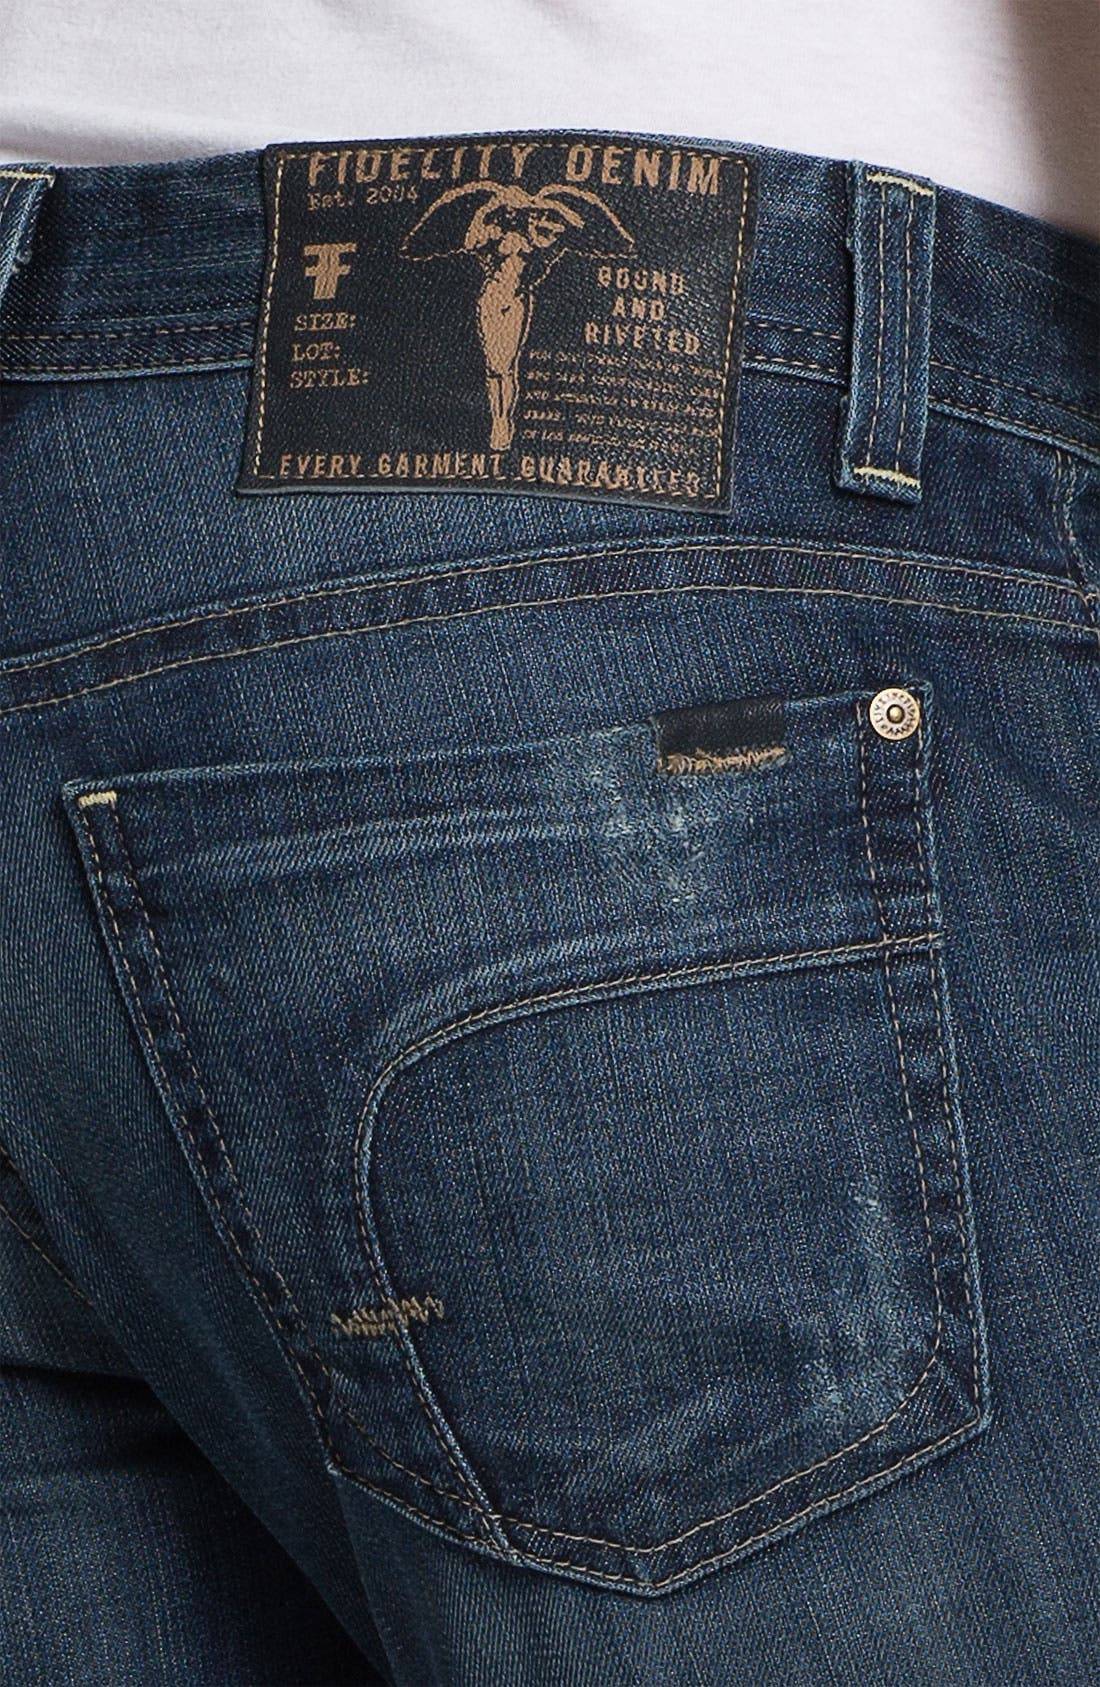 Alternate Image 4  - Fidelity Denim 'Slim Jim' Slim Straight Leg Jeans (Exile Vintage)